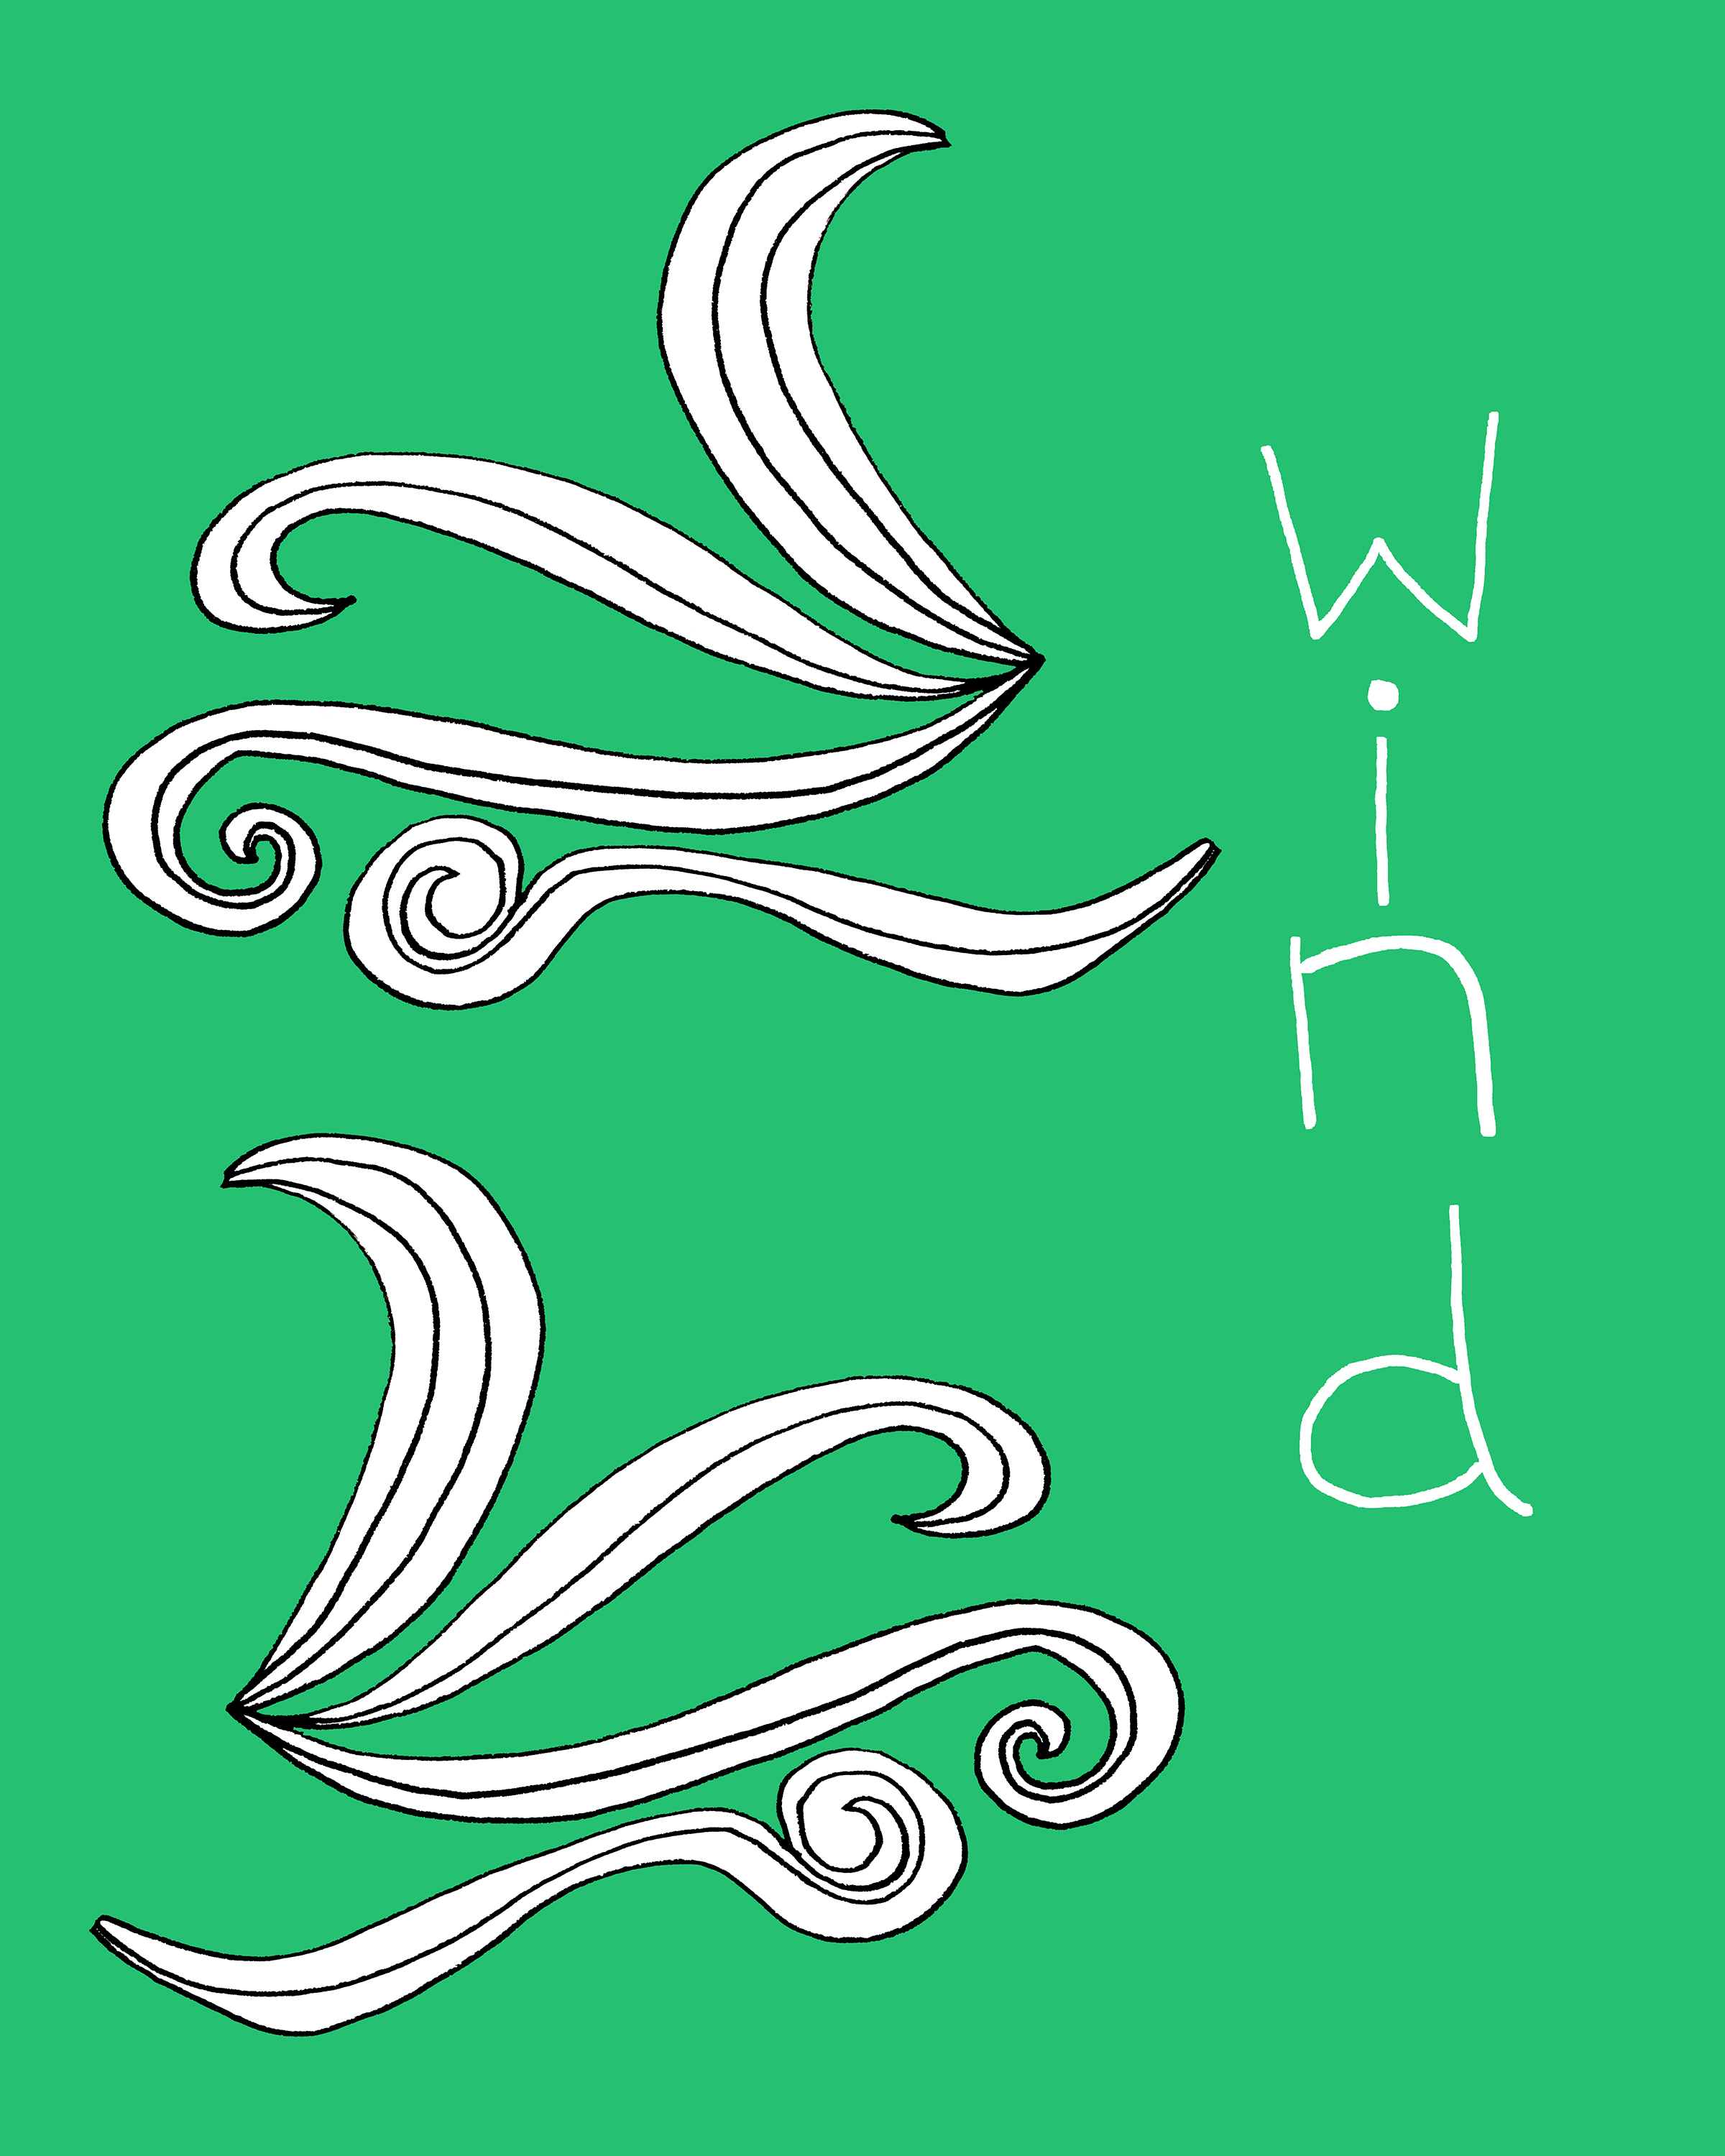 Wind_001 color_web.jpg